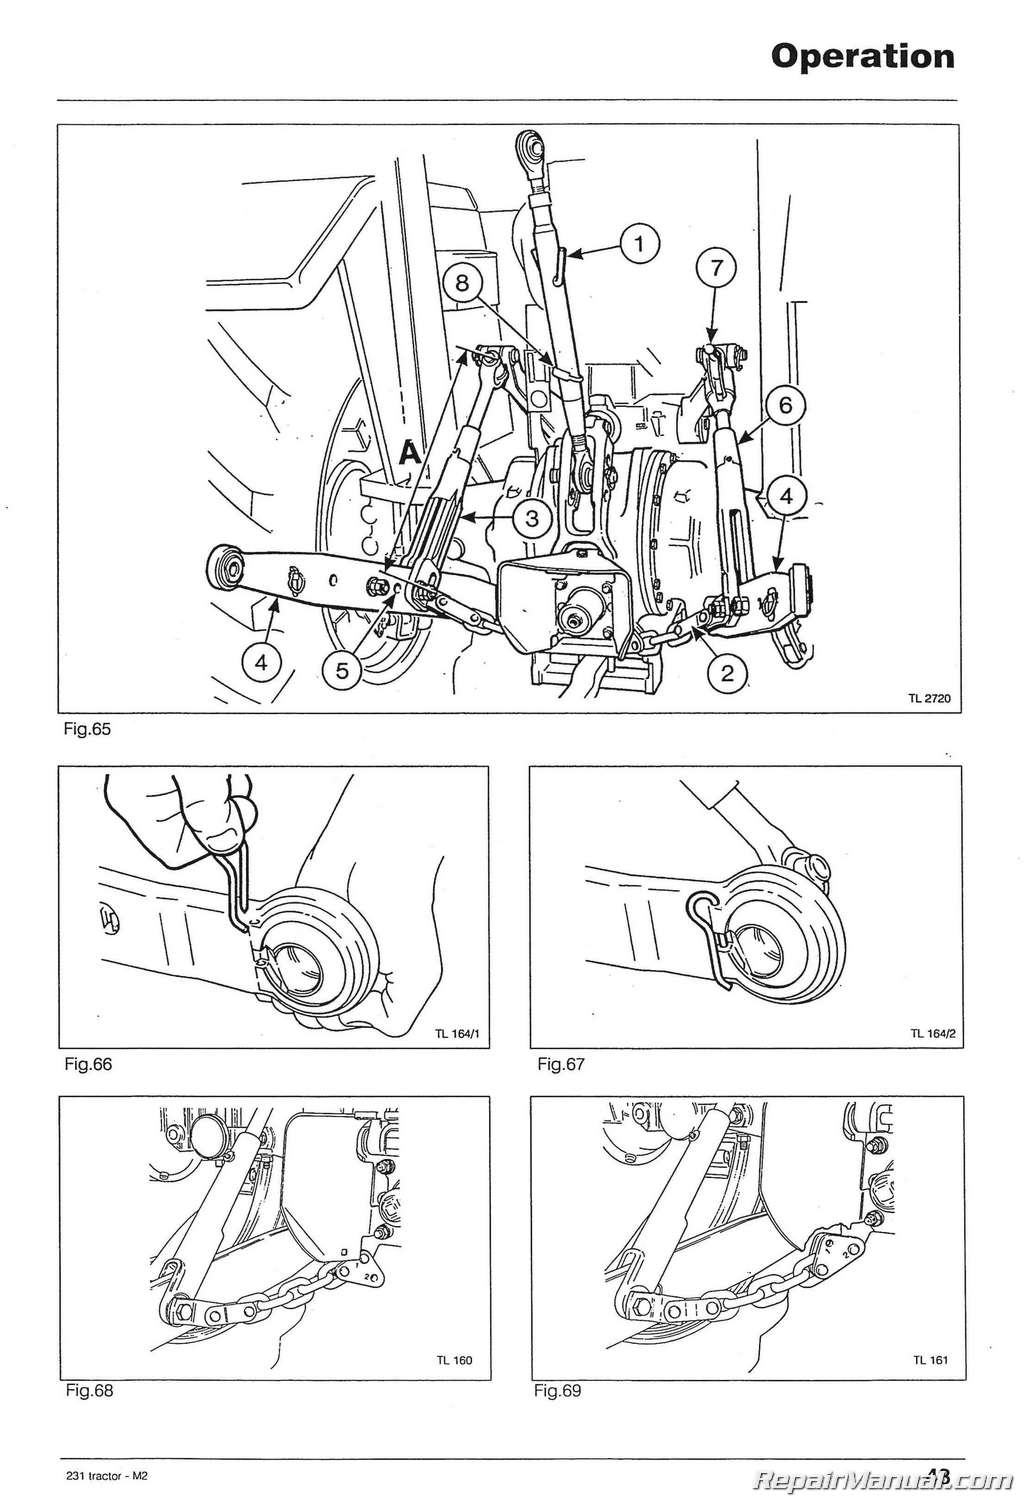 Wiring Diagram For Massey Ferguson 65 ndash The Wiring Diagram